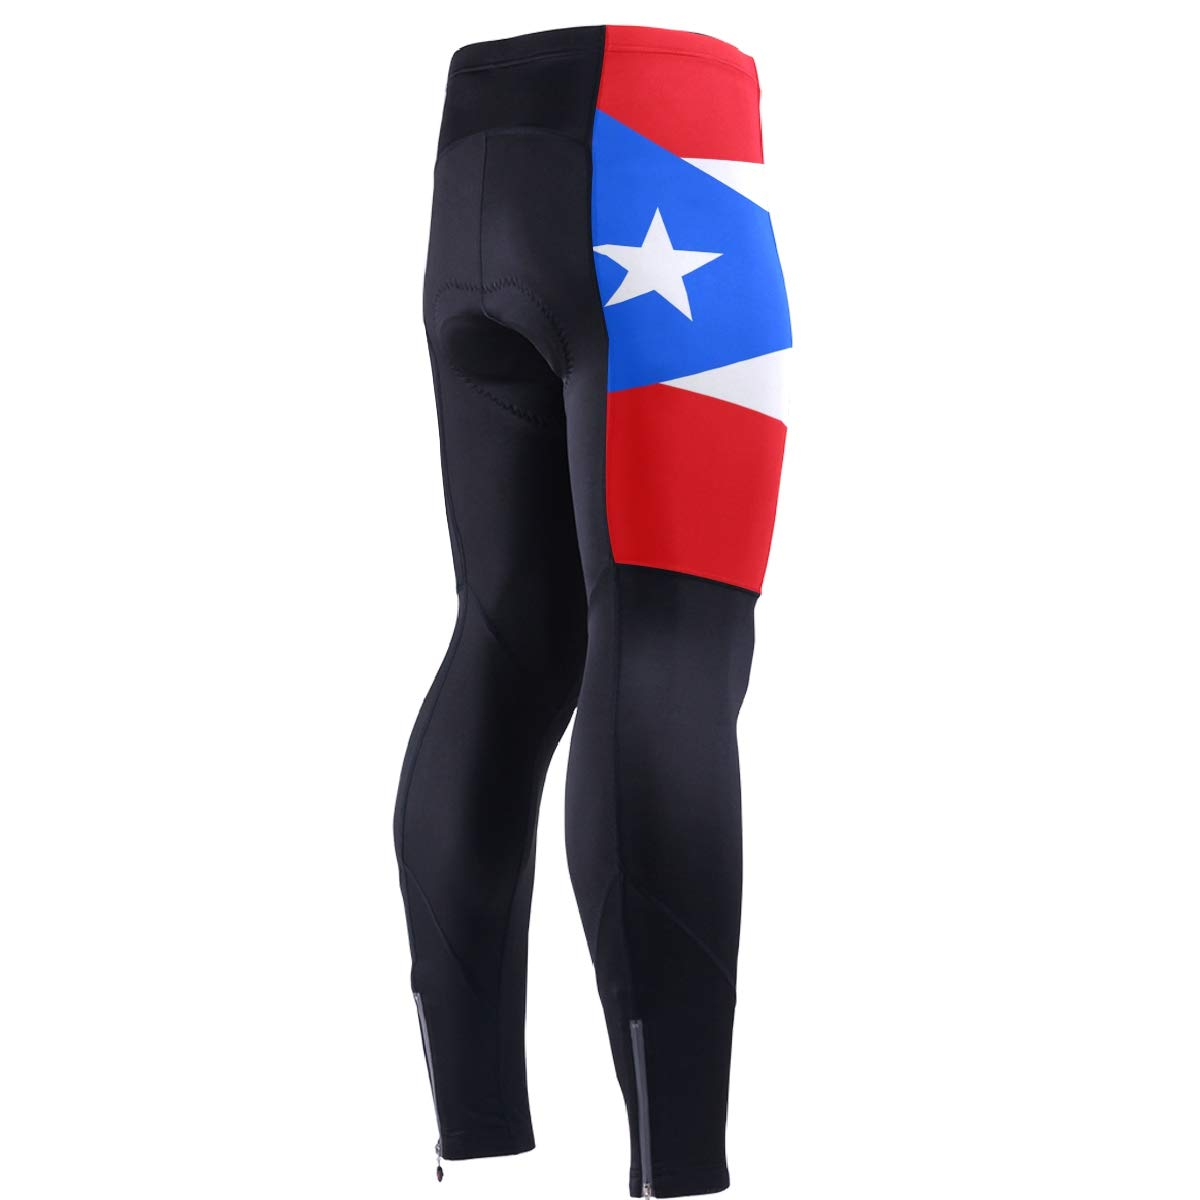 CHINEIN Men's Cycling Jersey Long Sleeve with 3 Rear Pockets Pants Puerto Rico Flag